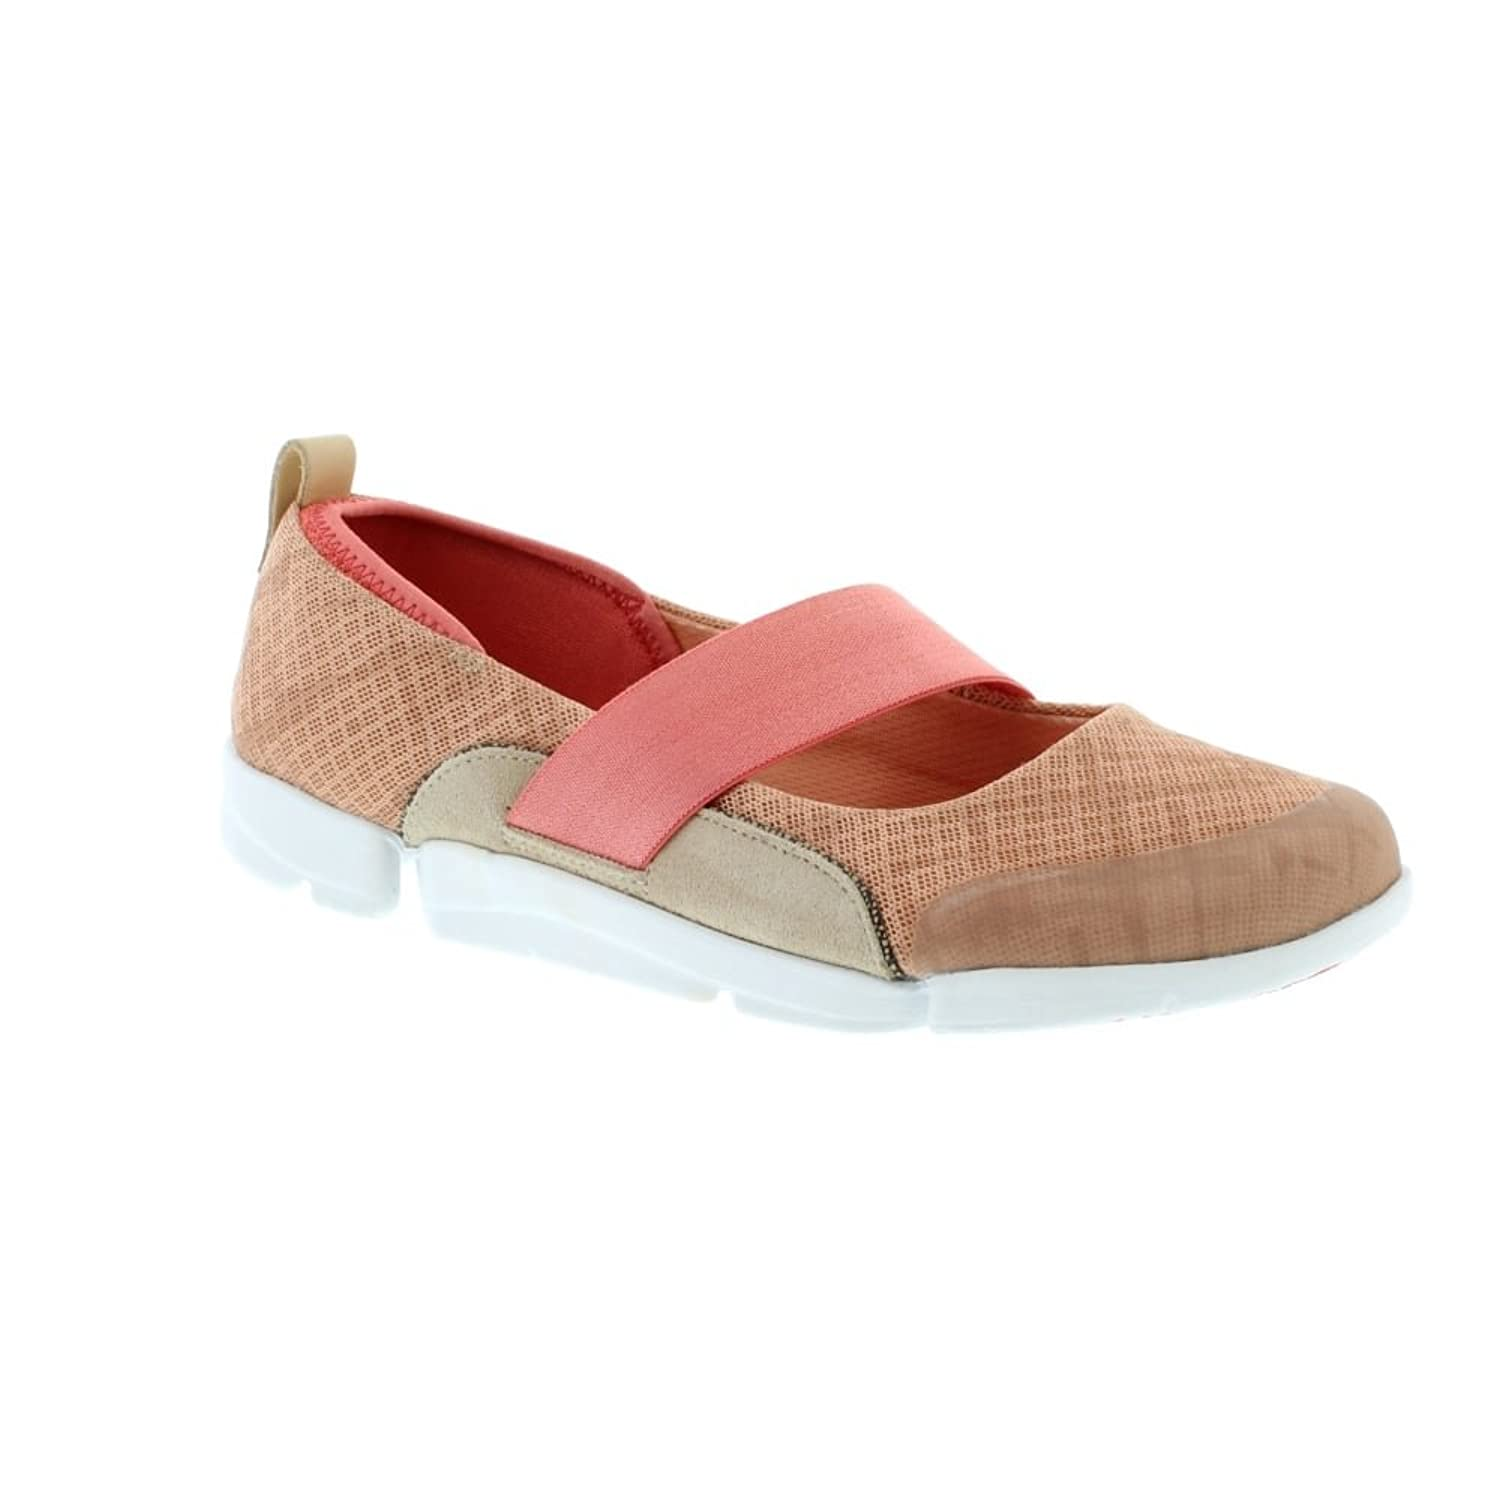 Clarks Tri Allie - Pink Combi4 UK